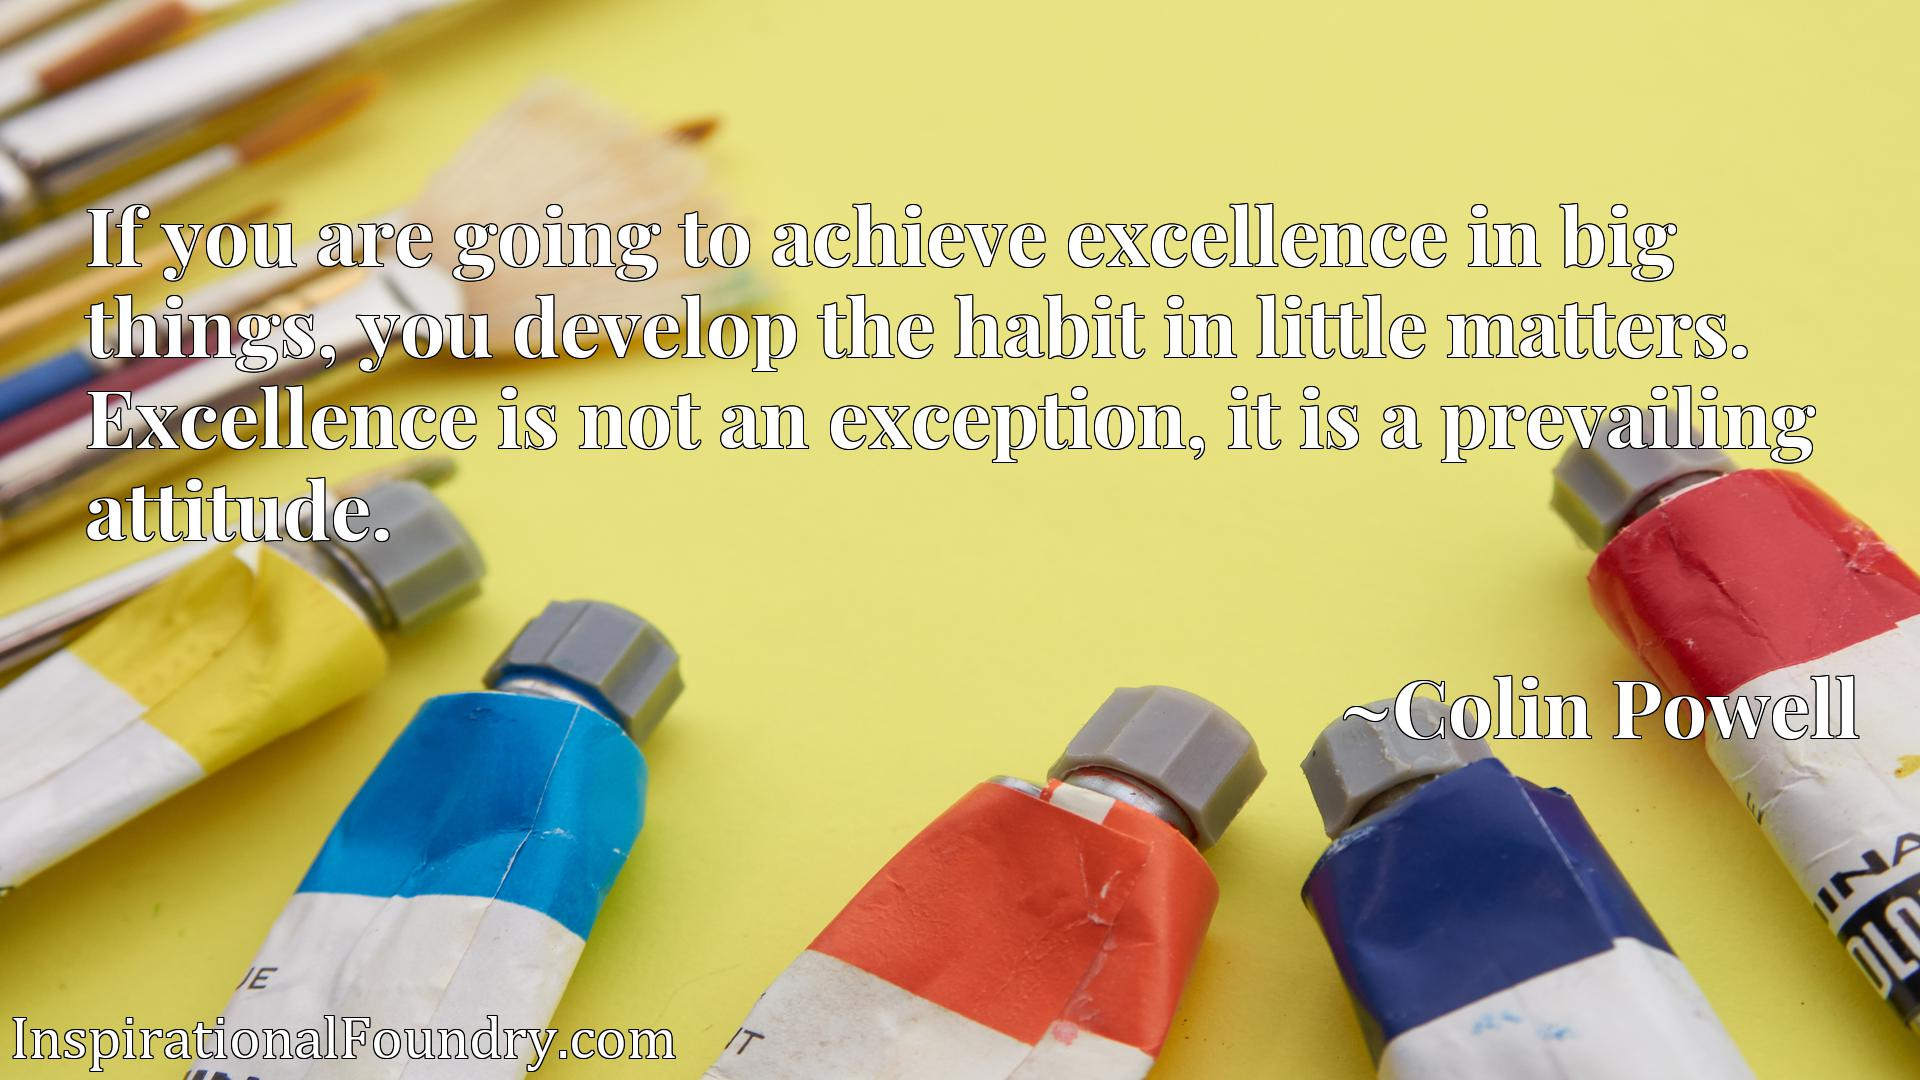 If you are going to achieve excellence in big things, you develop the habit in little matters. Excellence is not an exception, it is a prevailing attitude.